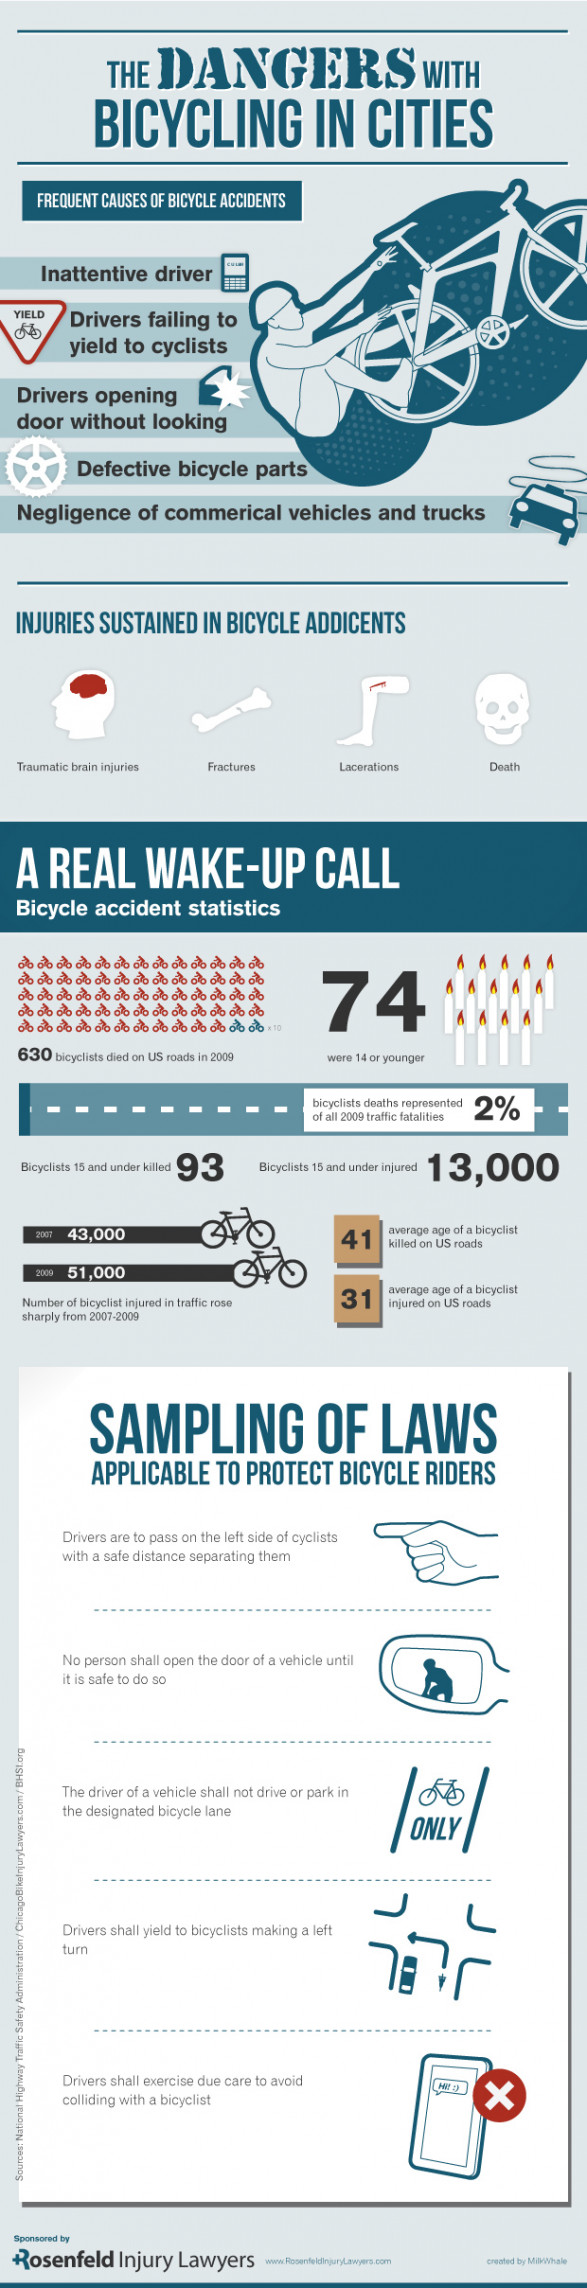 Dangers of Bicycling in Cities